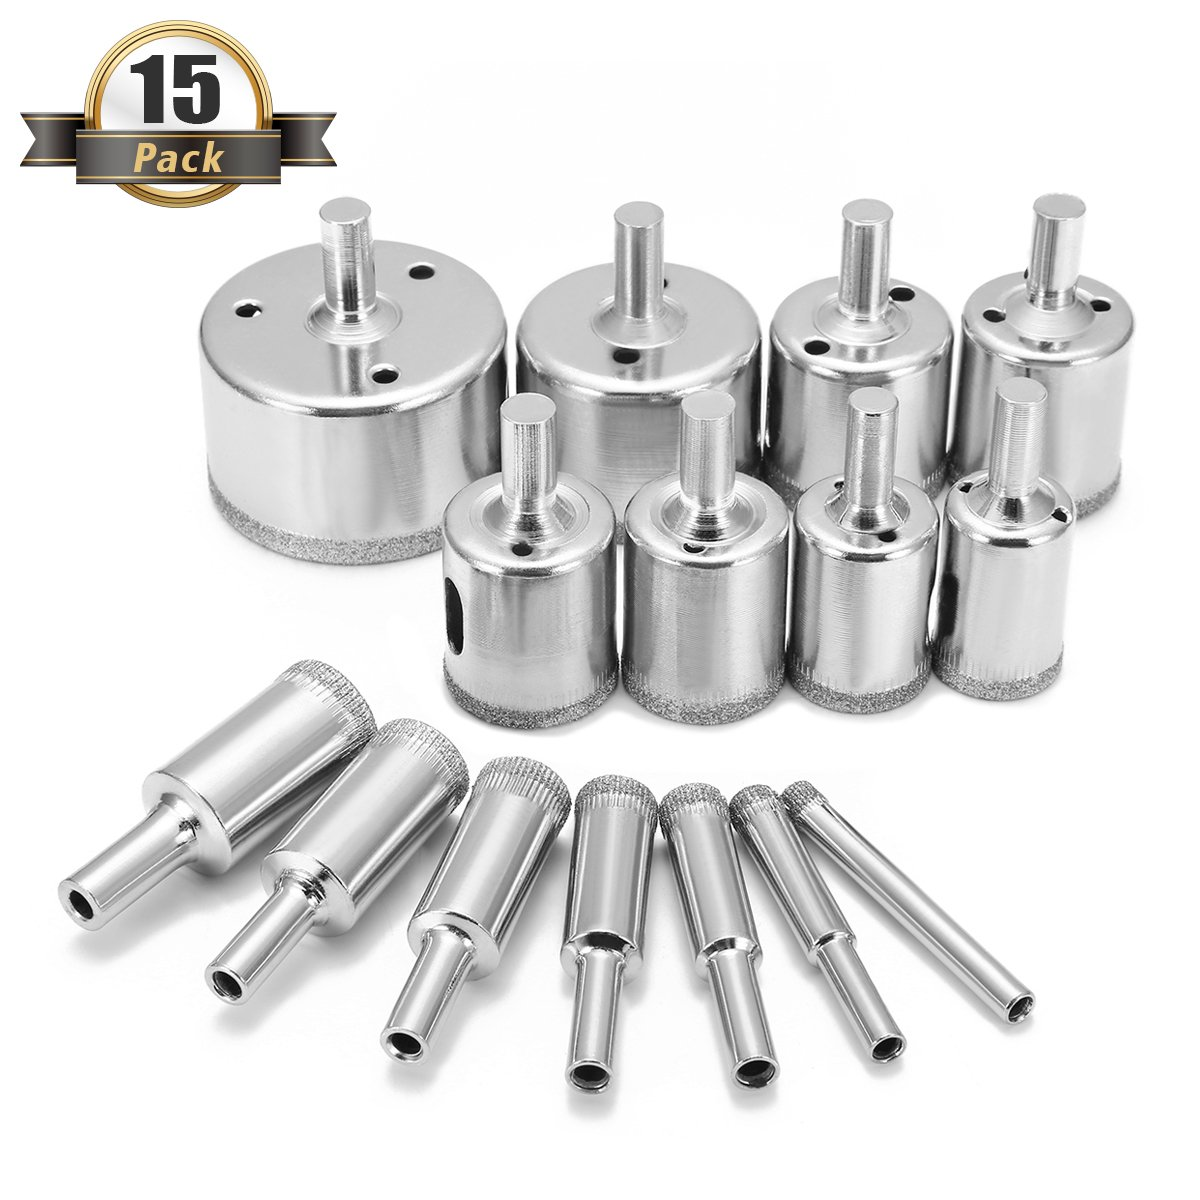 Tile Hole Saw, Drillpro 15 Pcs Diamond Hole Saw Remover Tools for Glass, Porcelain, Ceramic, Granite Stone Drill Bits 6-50mm